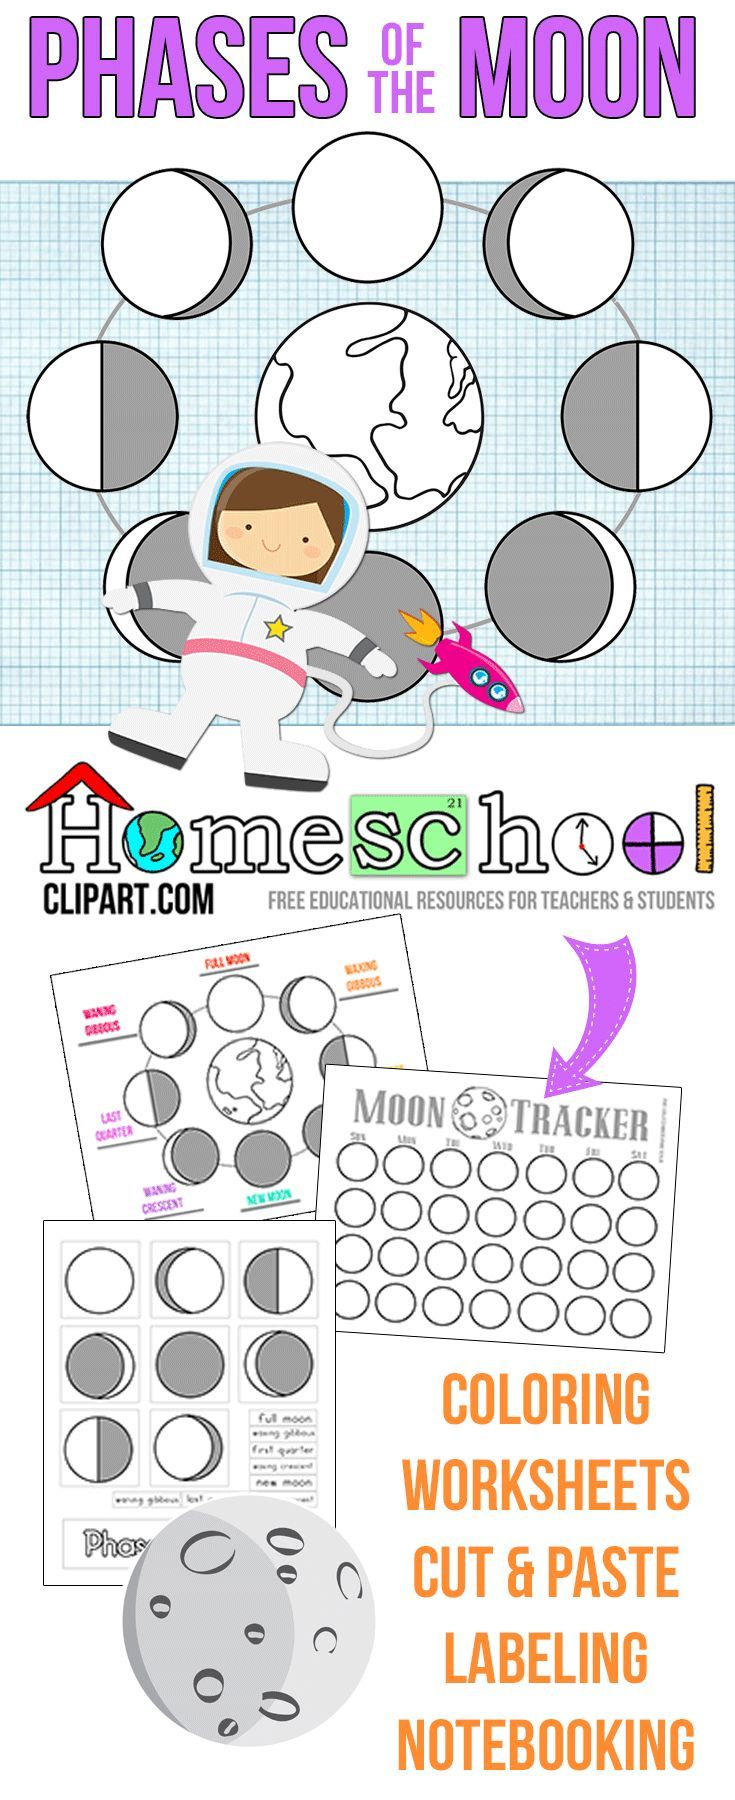 Workbooks solar system for kids worksheets : Free Phases of the Moon Activity Pages. Moon Tracker, Labeling ...